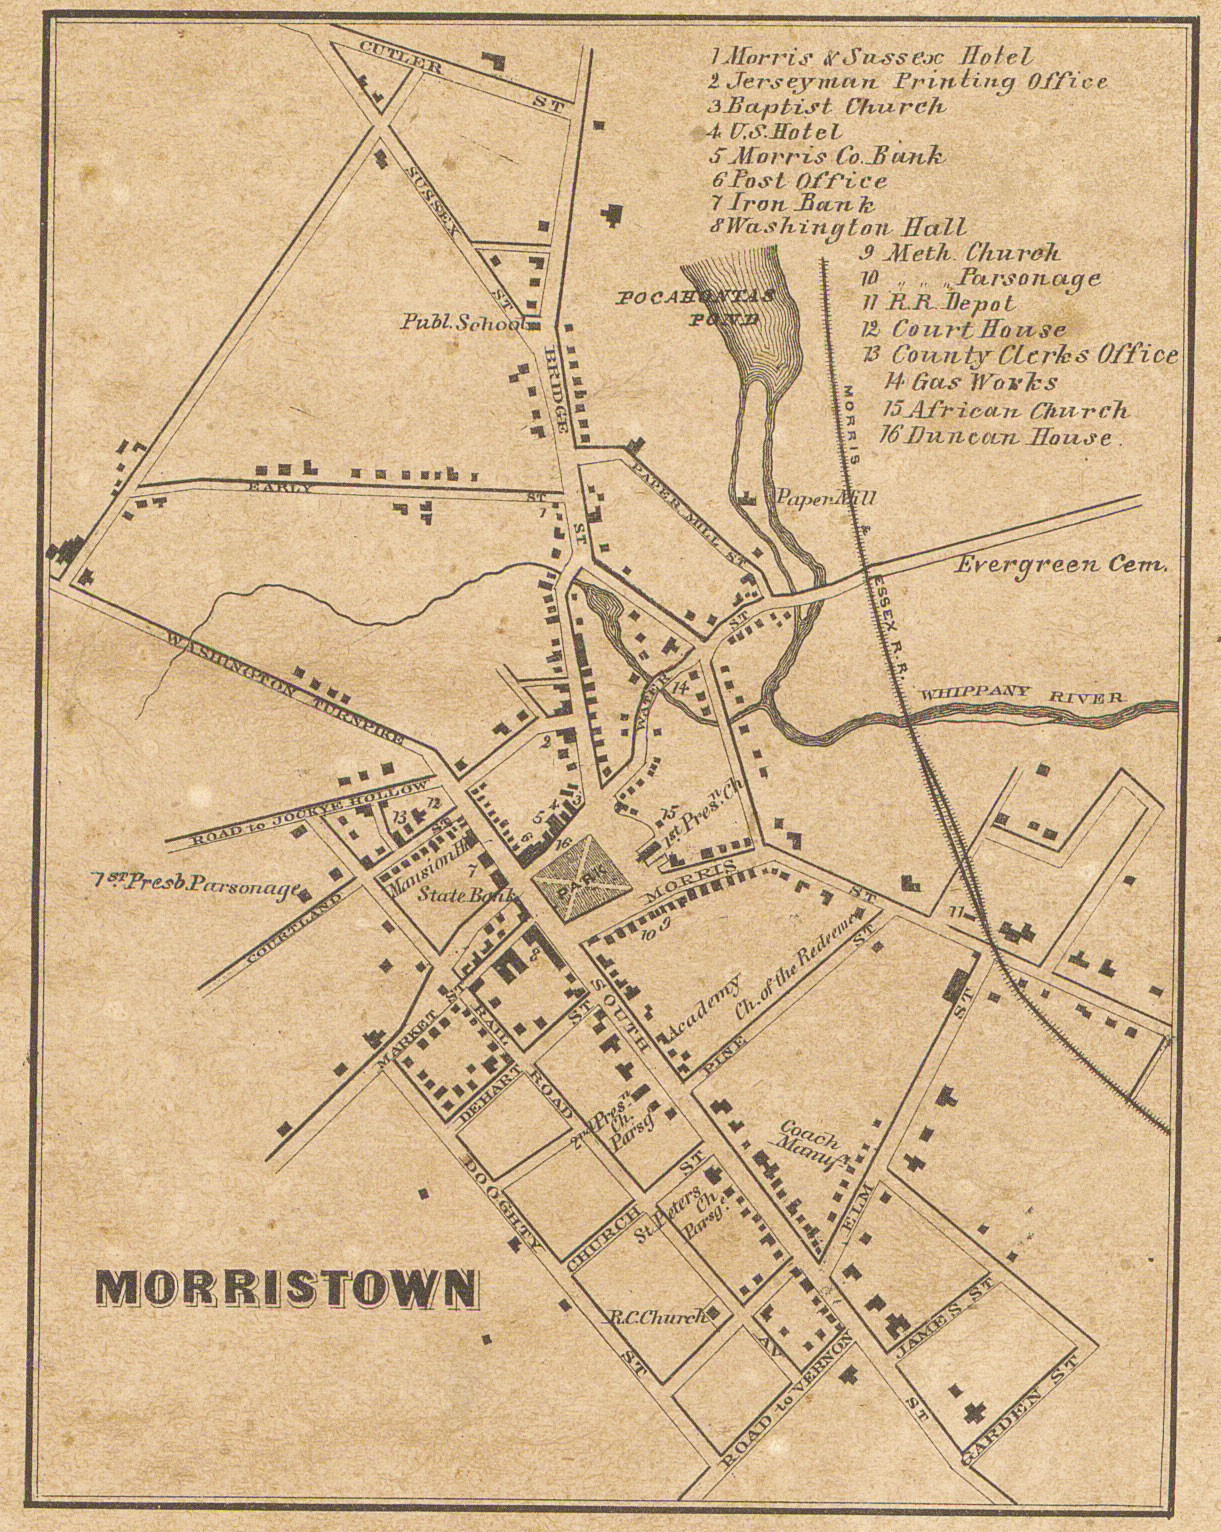 Morristown street map